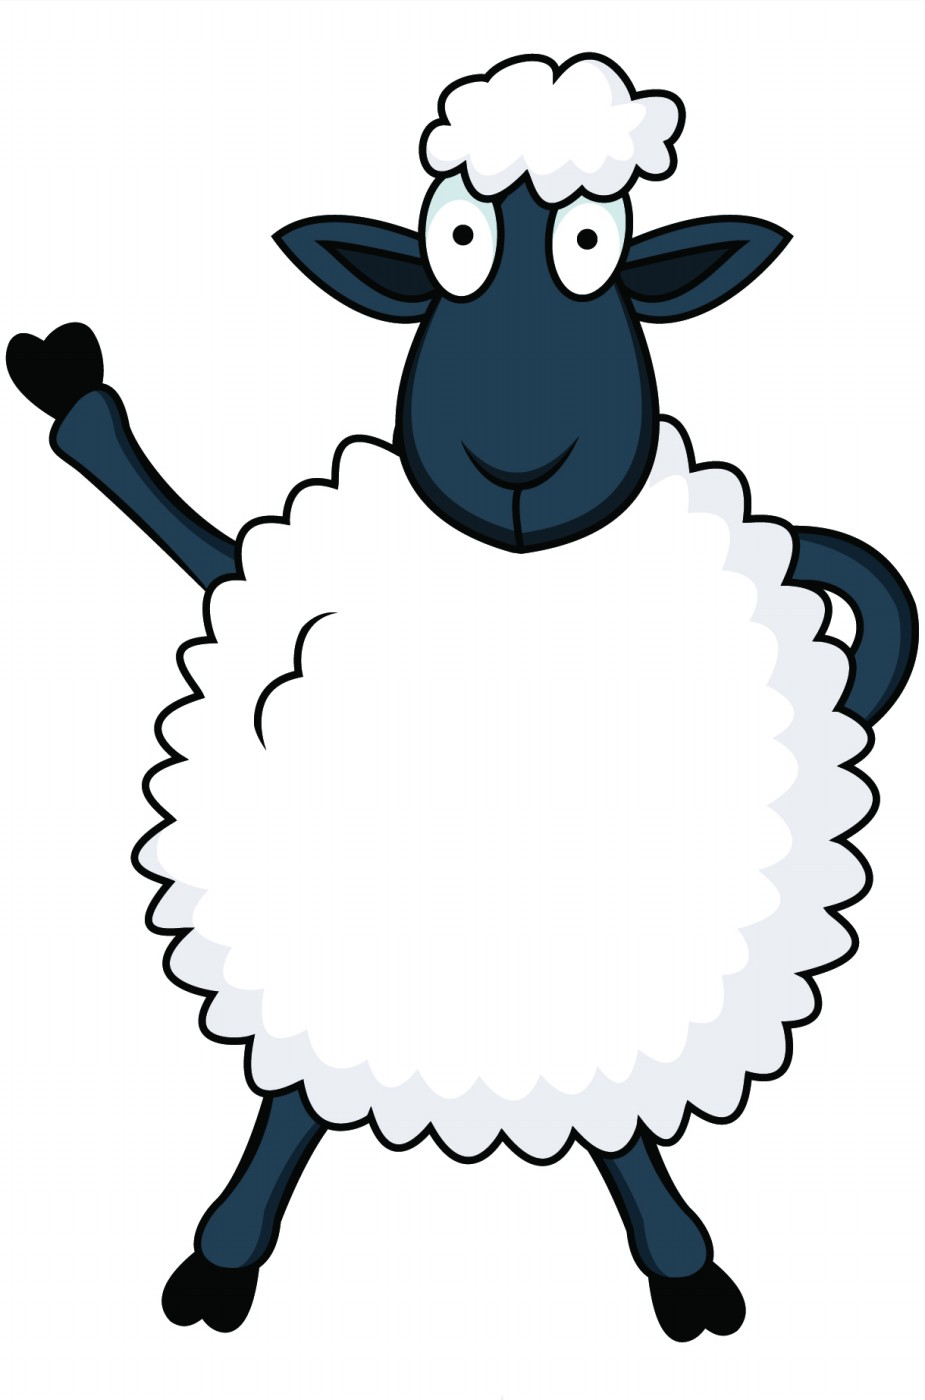 Pictures Of Cartoon Sheep.